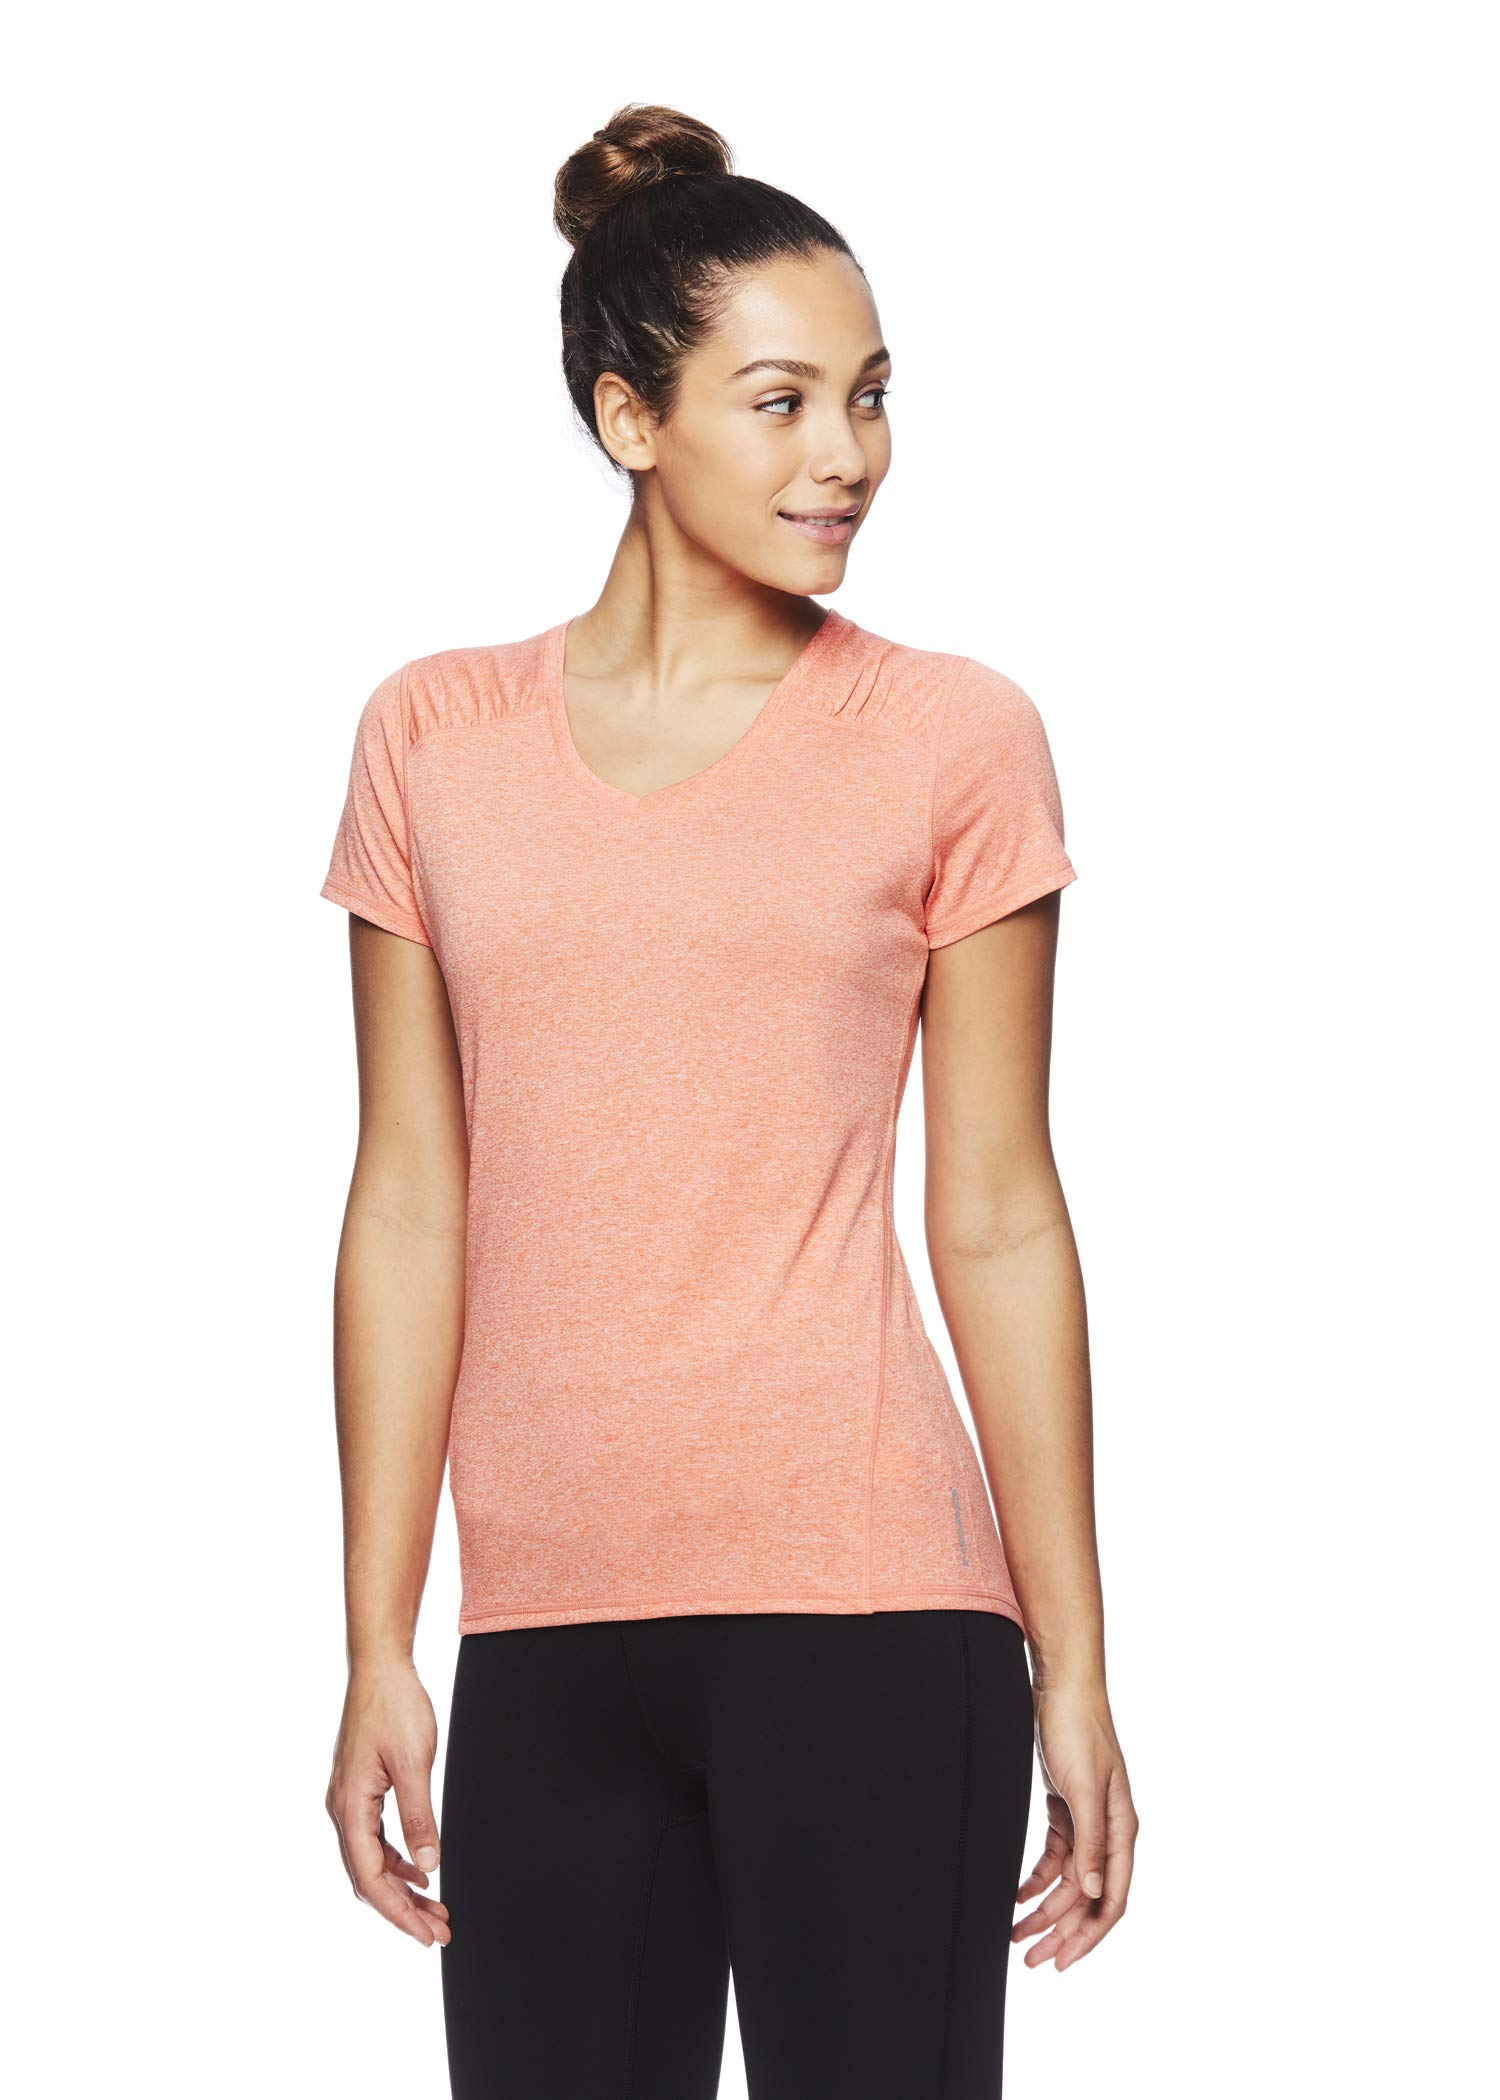 HEAD Women's Brianna Shirred Short Sleeve Workout T-Shirt - Marled Performance Crew Neck Activewear Top - Brianna Peach Echo Heather, X-Small by HEAD (Image #2)